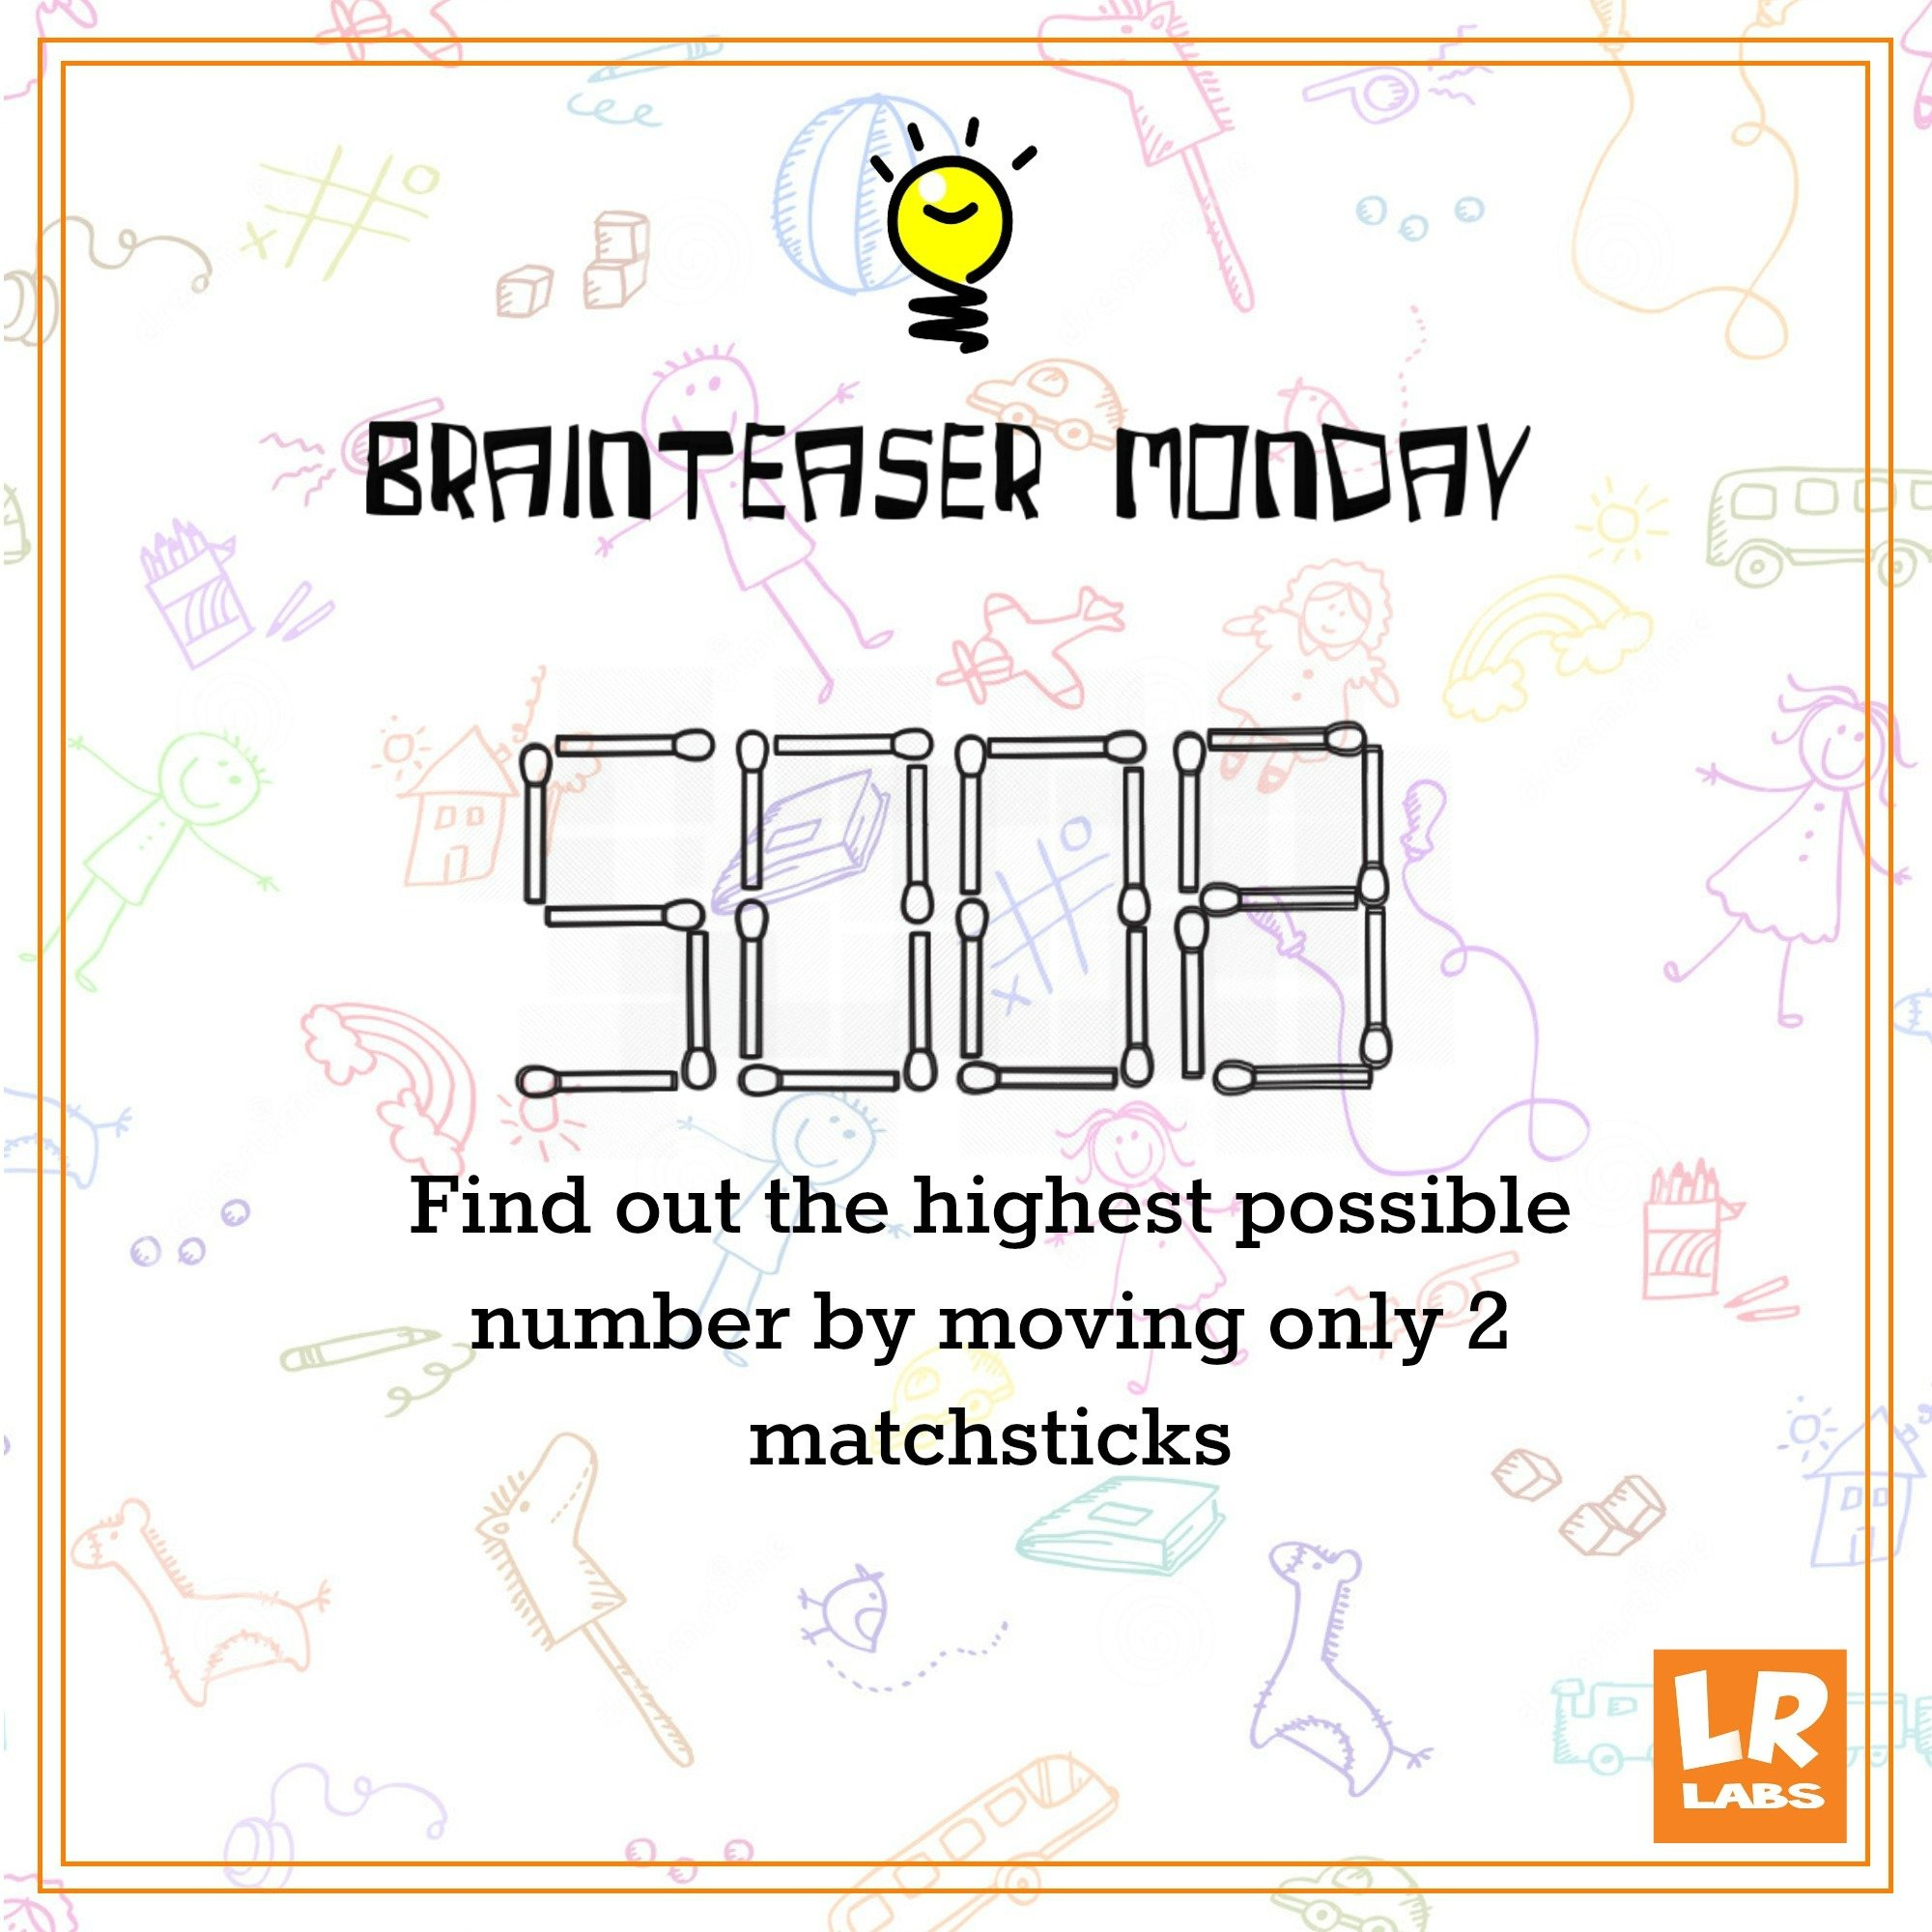 Brainteaser - The Matchstick Puzzle - Logicroots - Printable Matchstick Puzzles